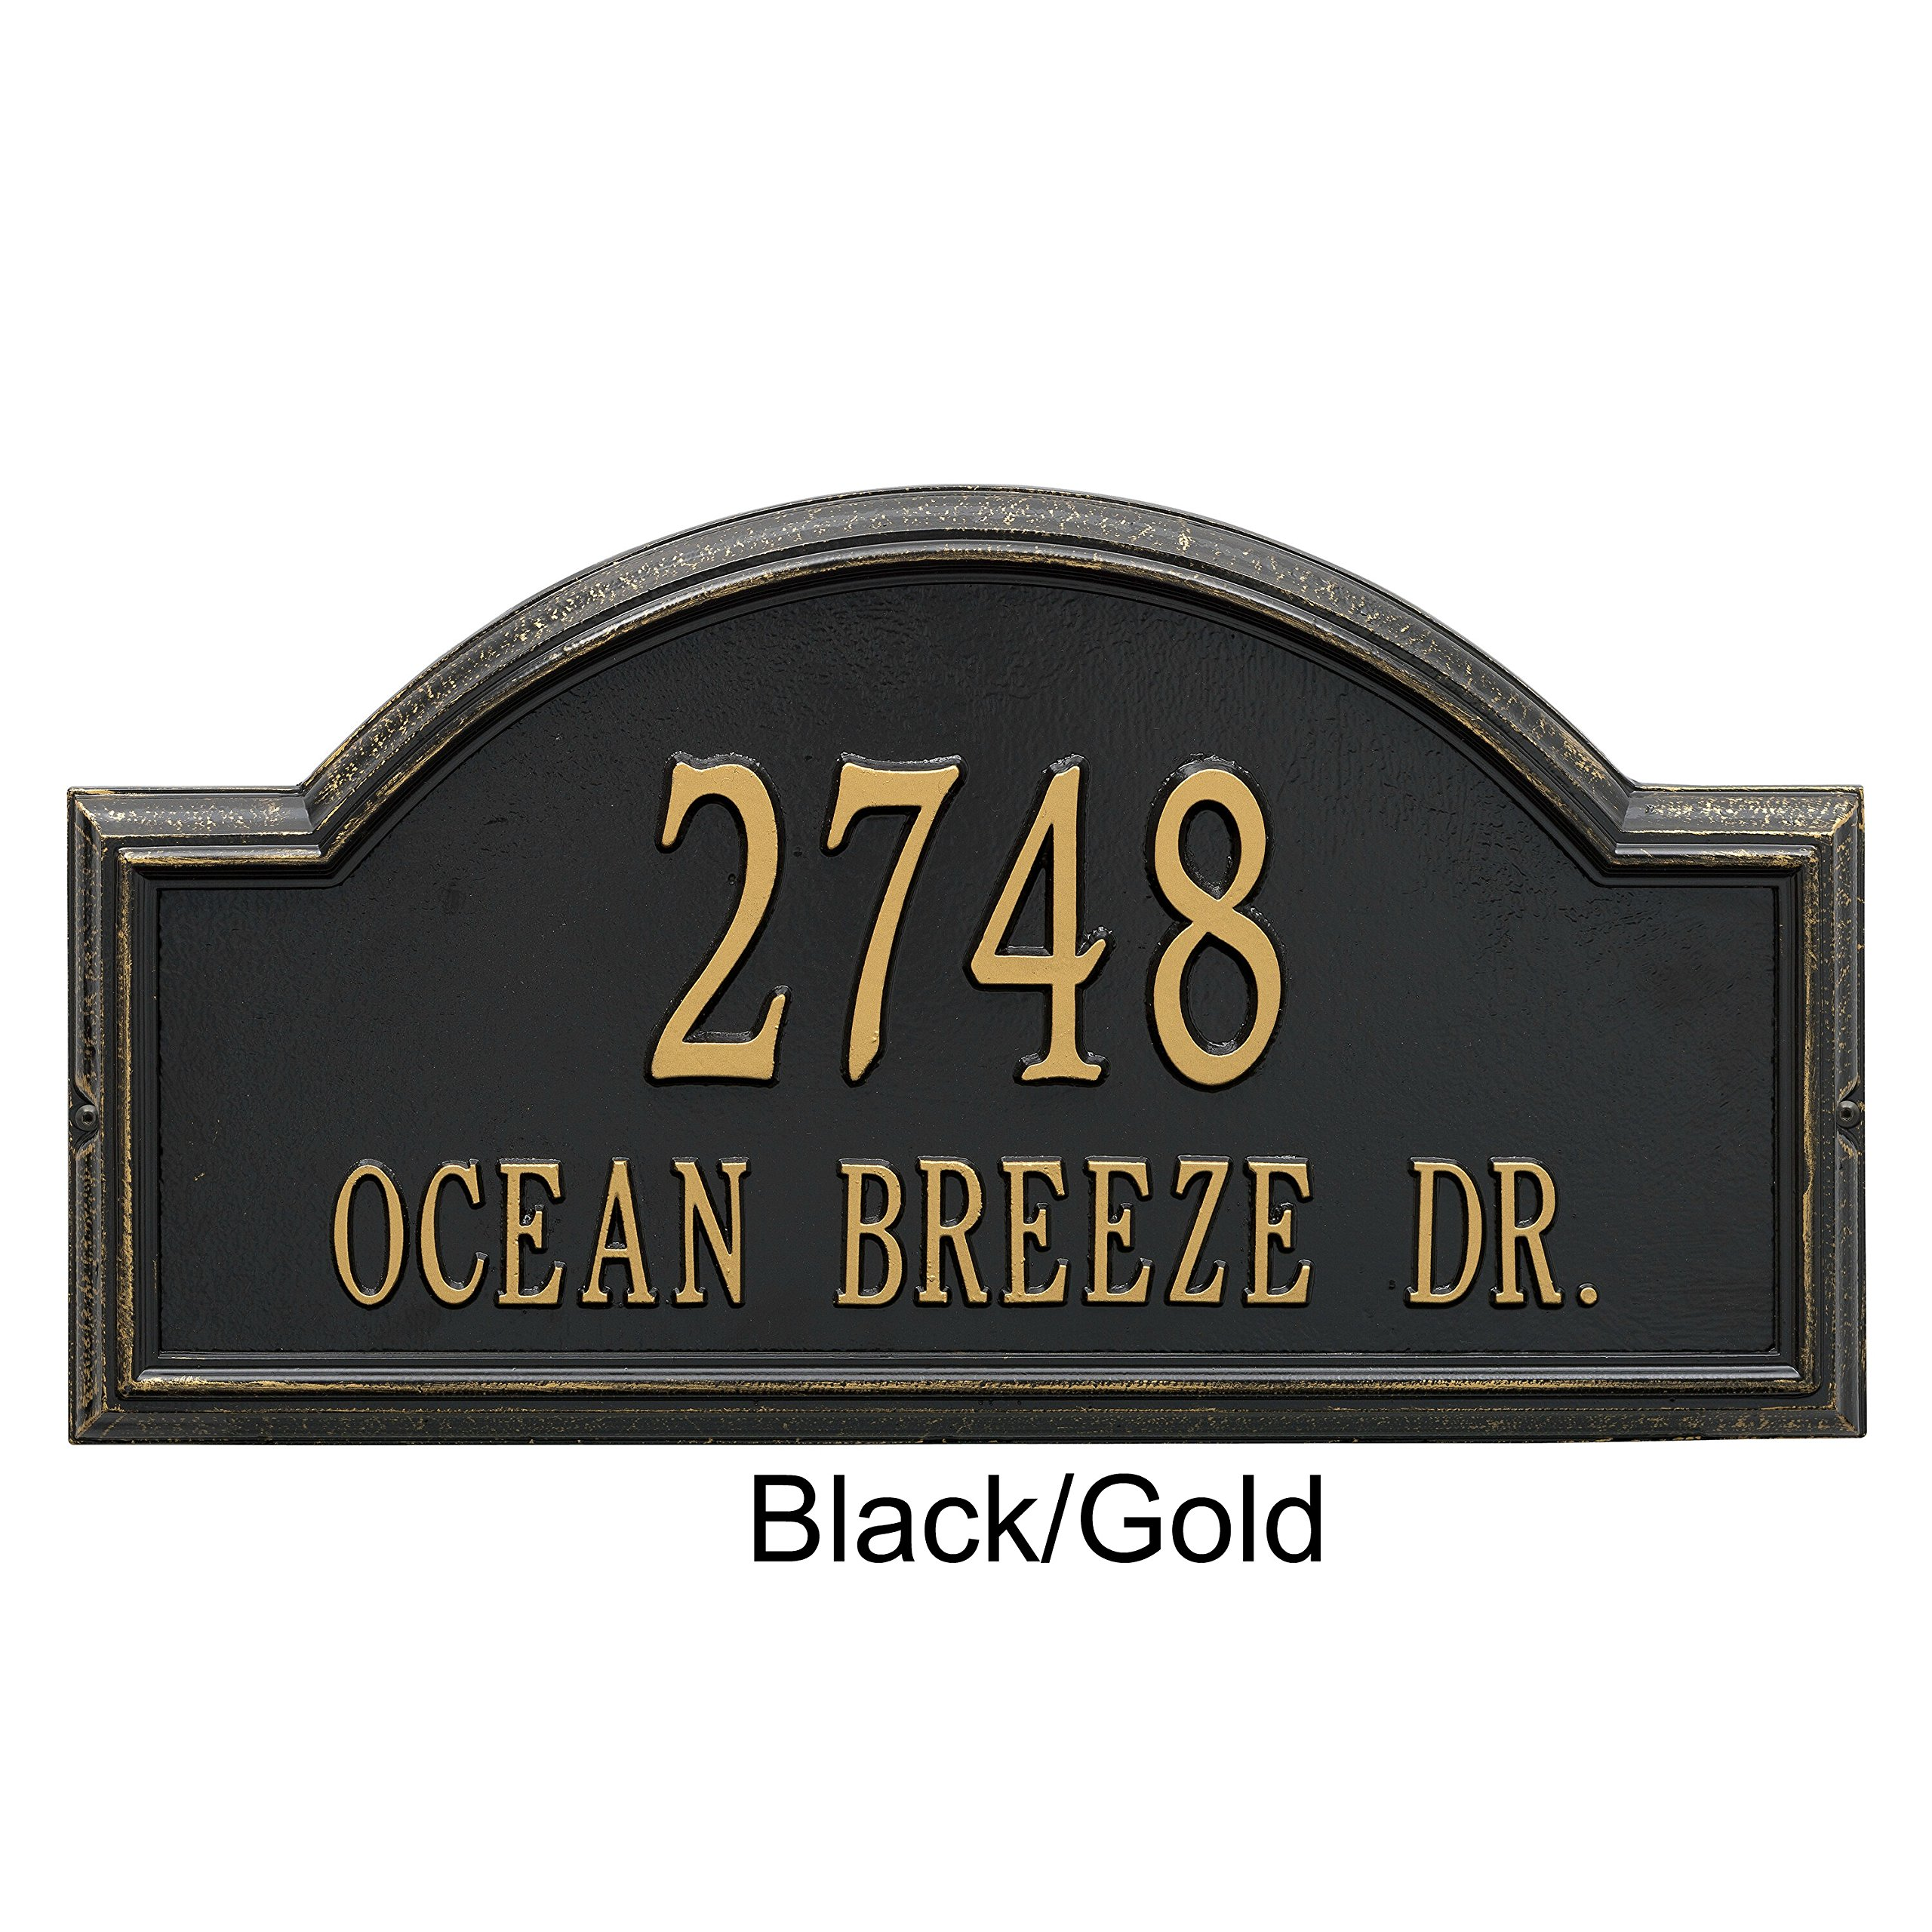 Whitehall Products Providence Arch Address Plaque - Estate Wall Plaque (Two Line Version), Black and Gold Letters - BG